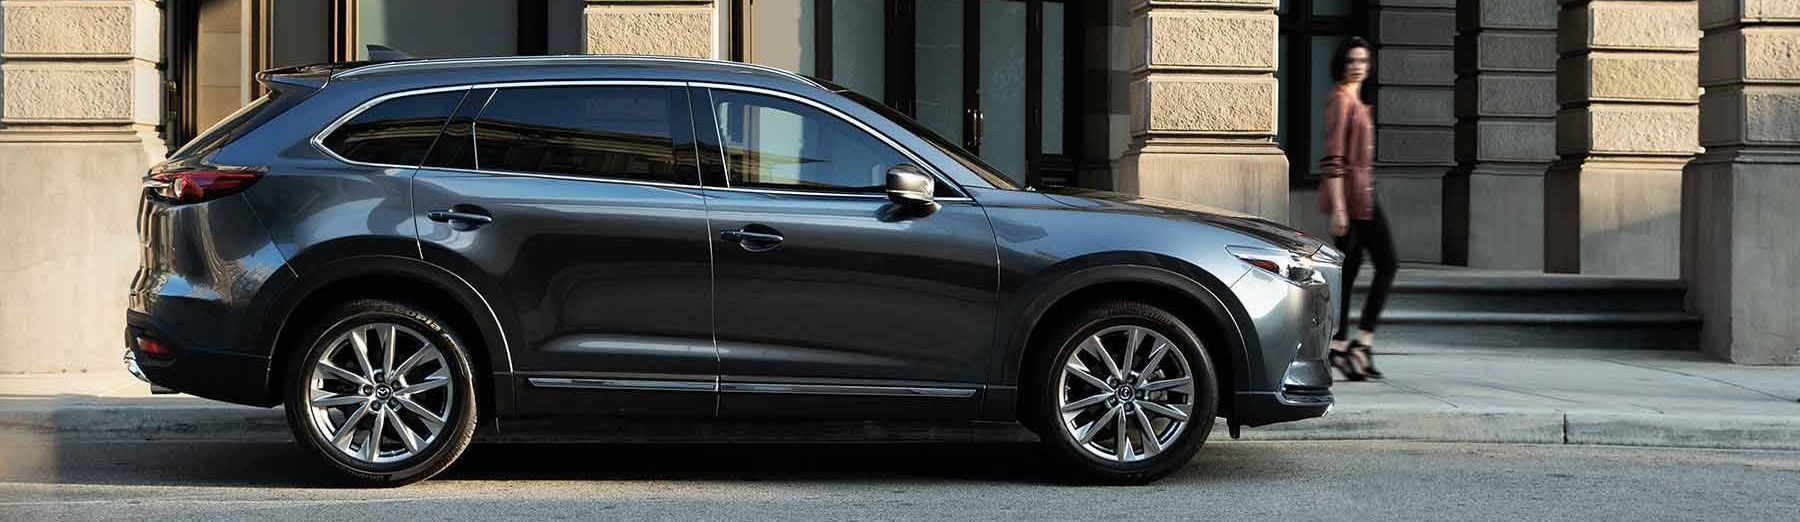 2019 Mazda CX-9 for Sale near San Marcos, TX